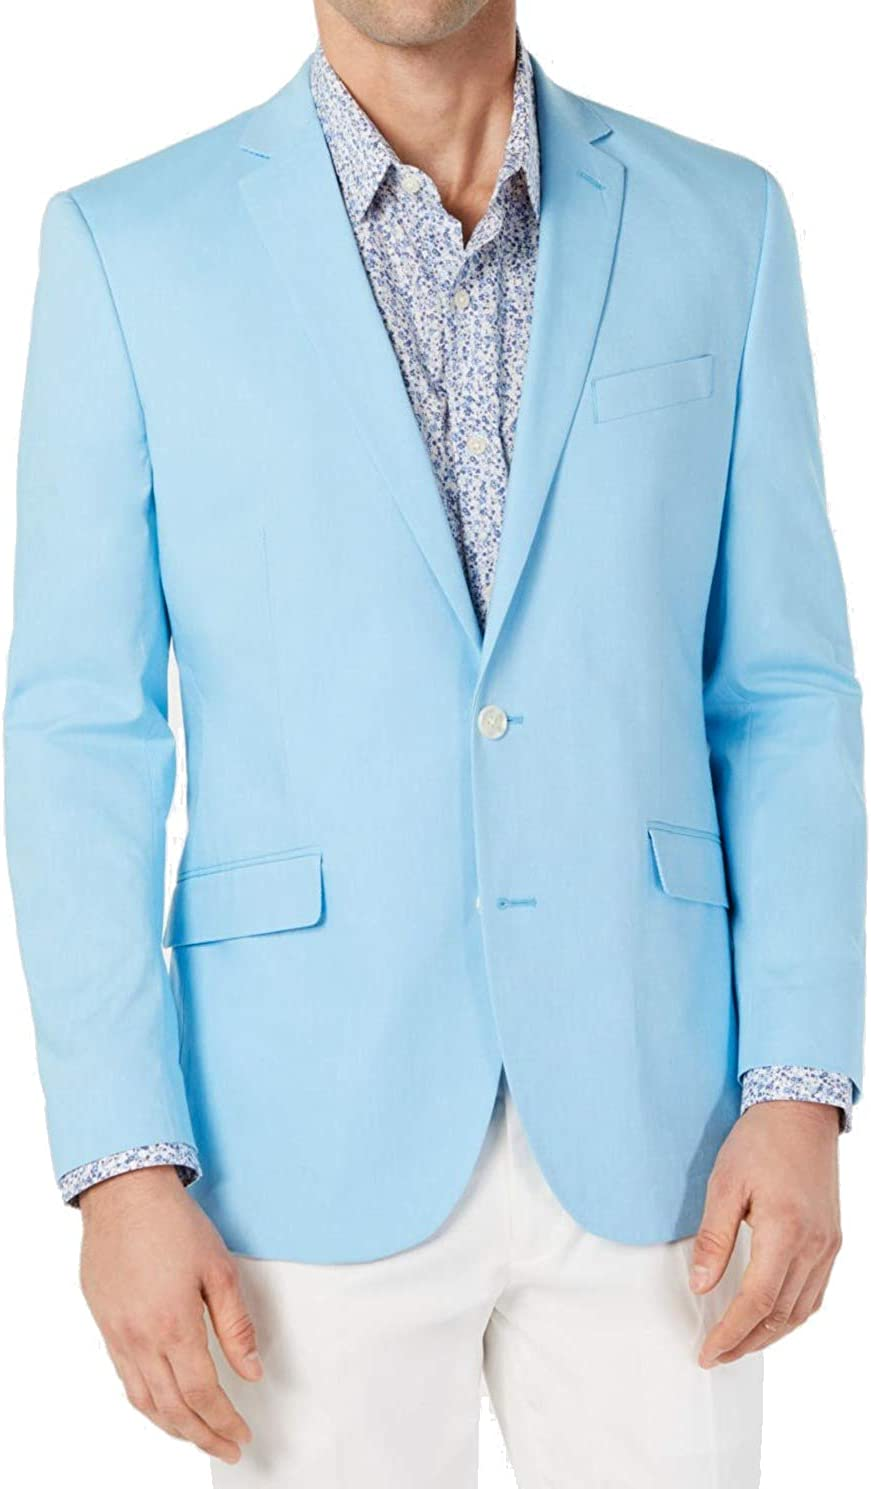 Unlisted Kenneth Cole Mens Sport Coat Sky Blue